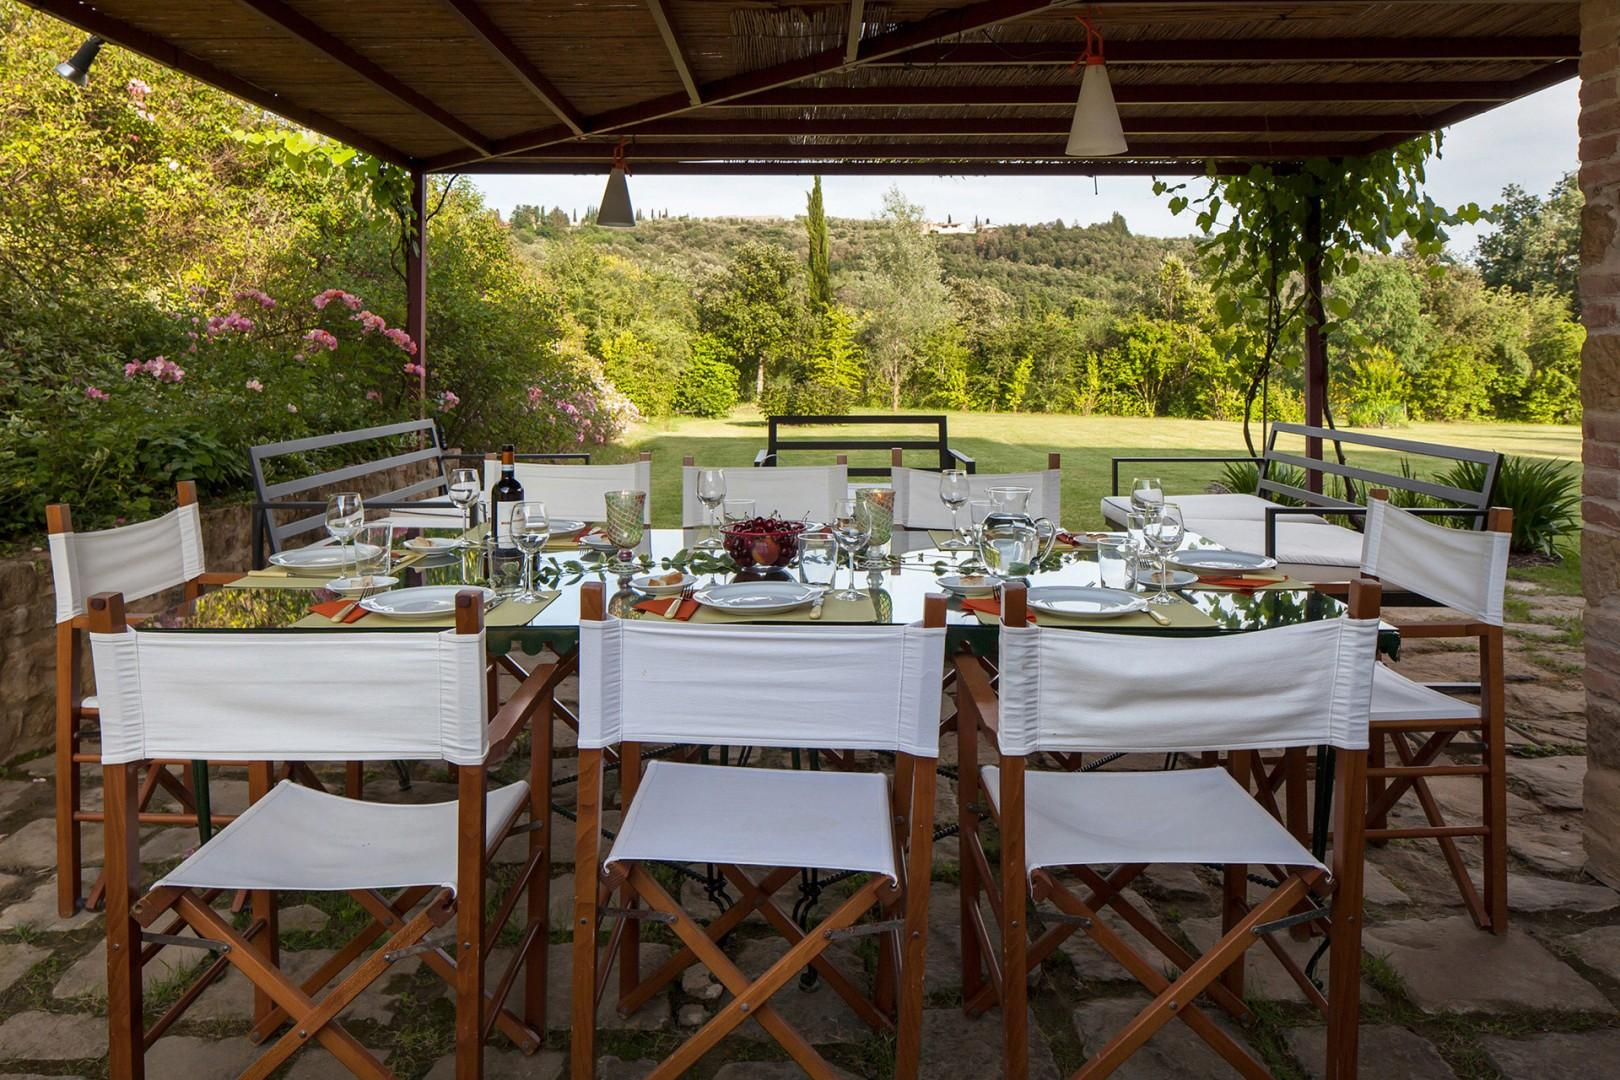 Dining table at the poolside terrace.